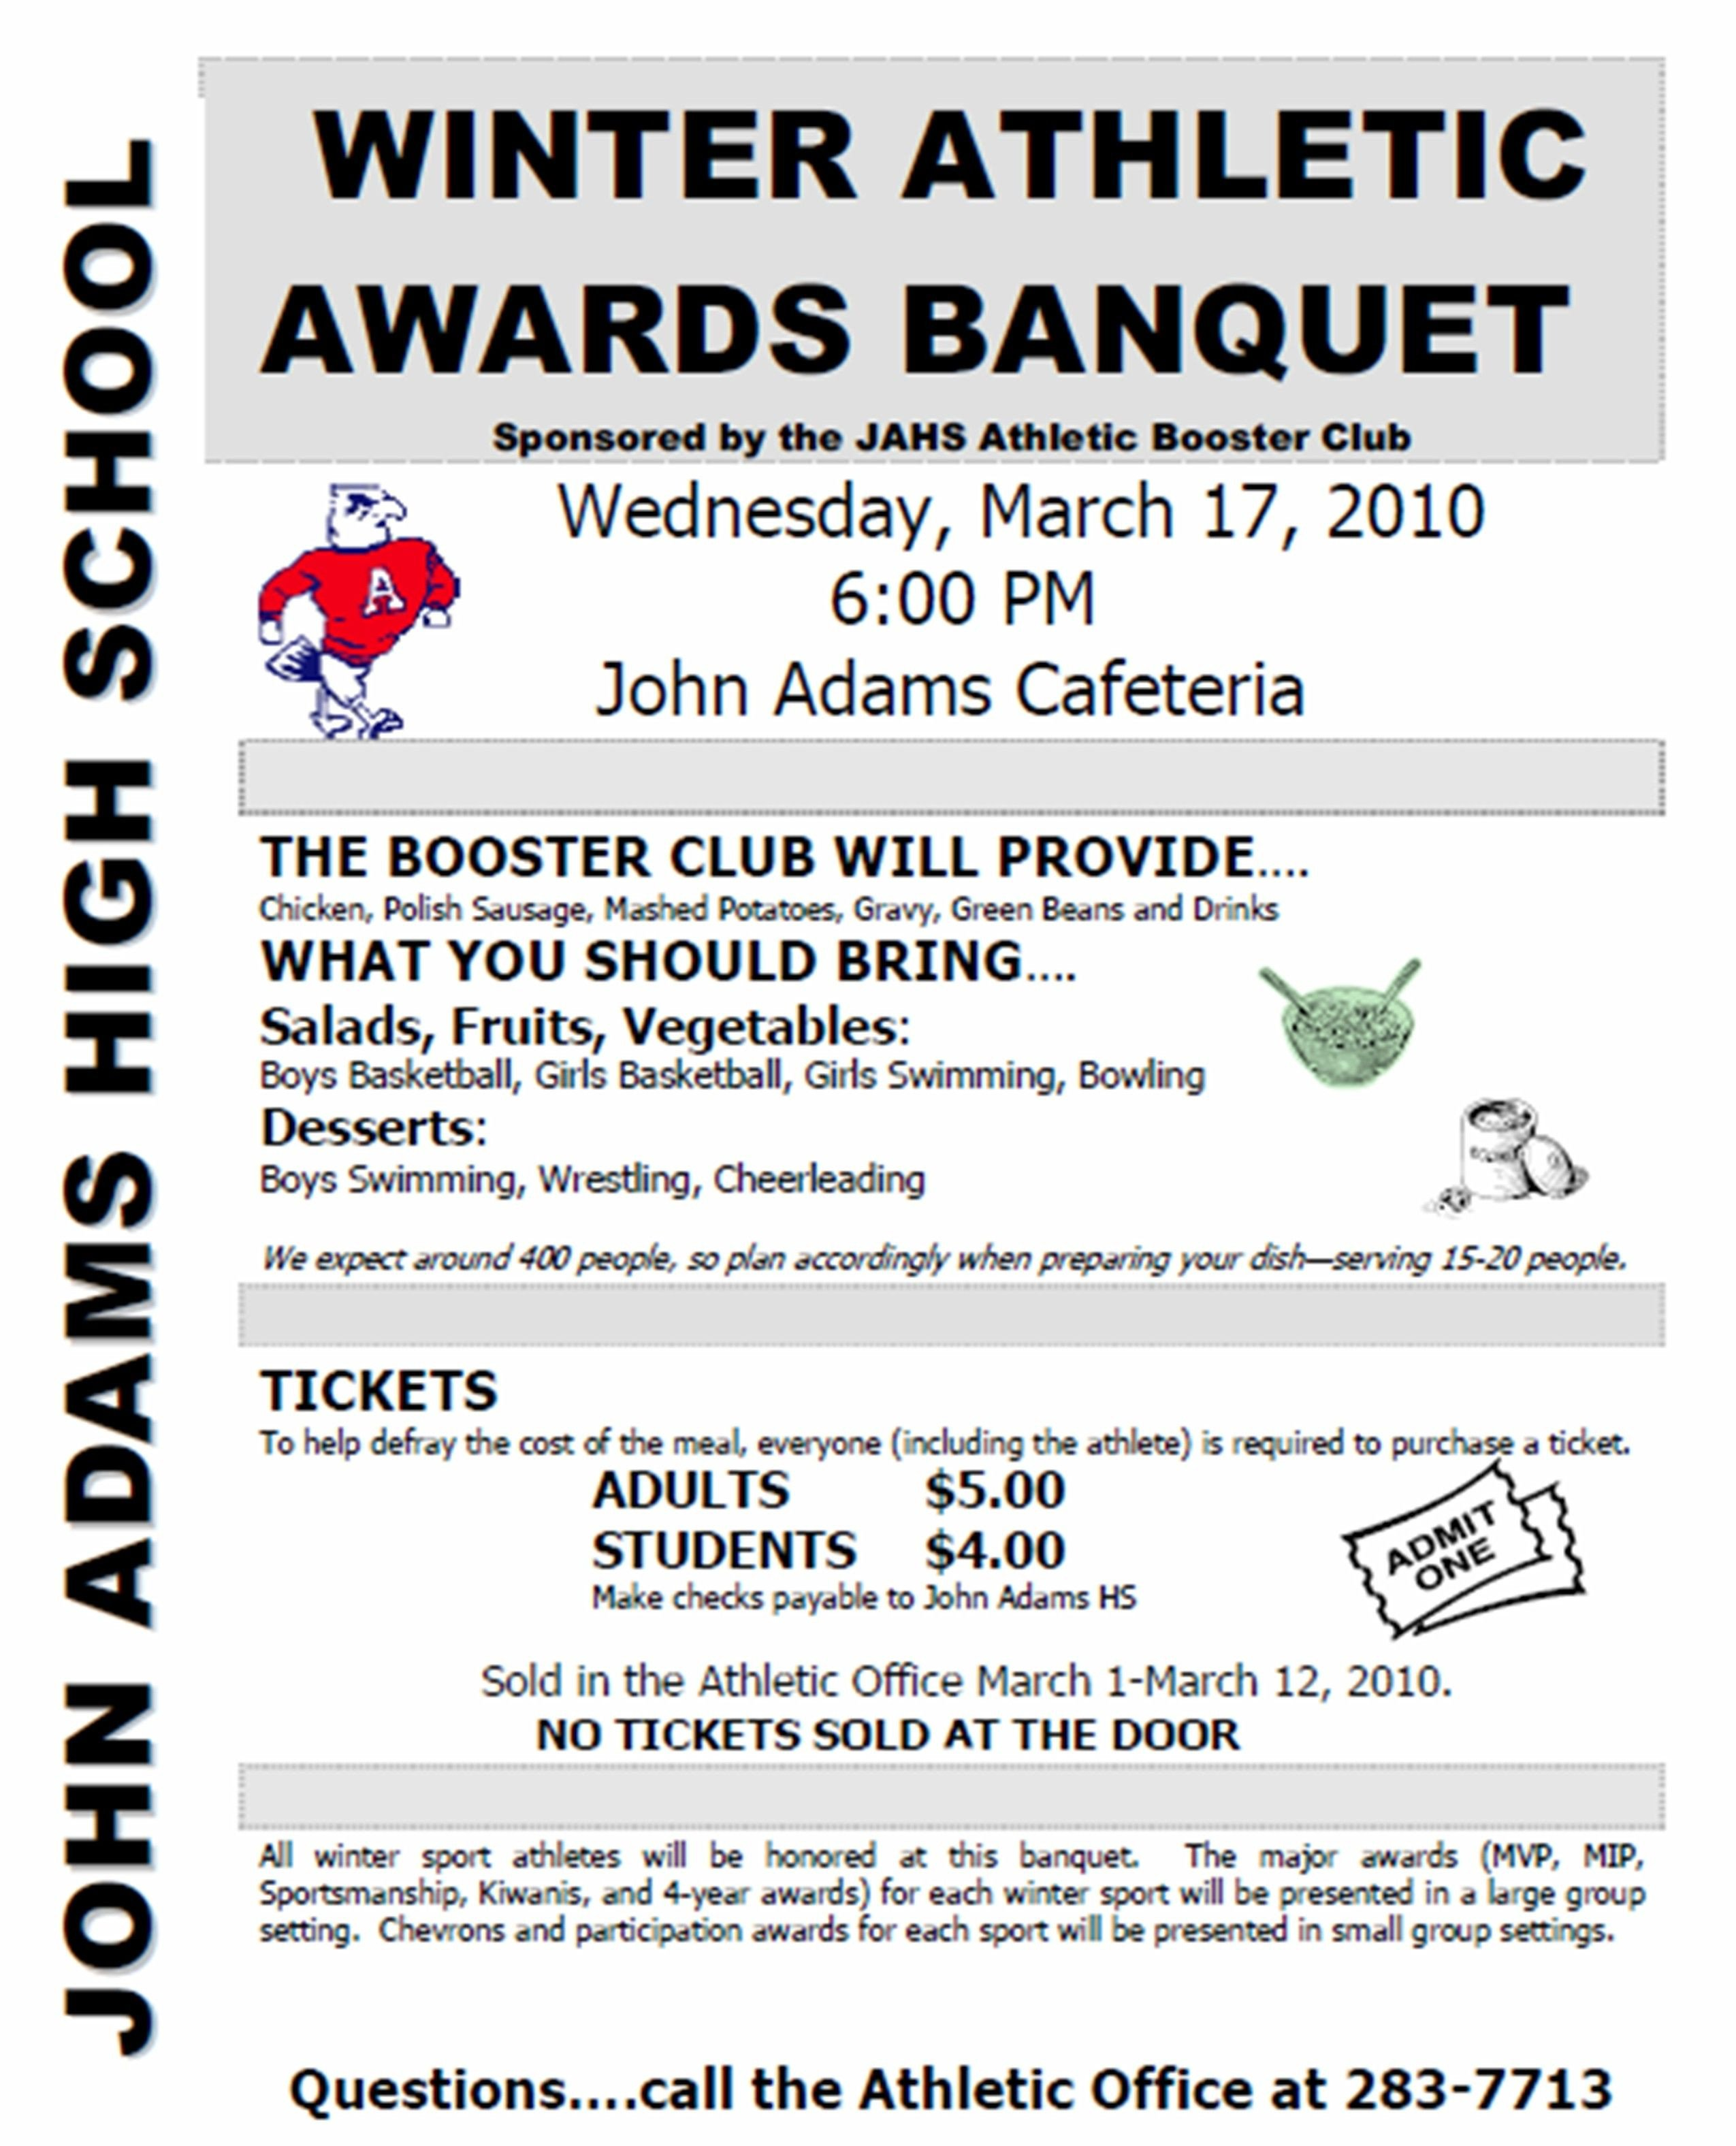 Sports Awards Banquet Program Template